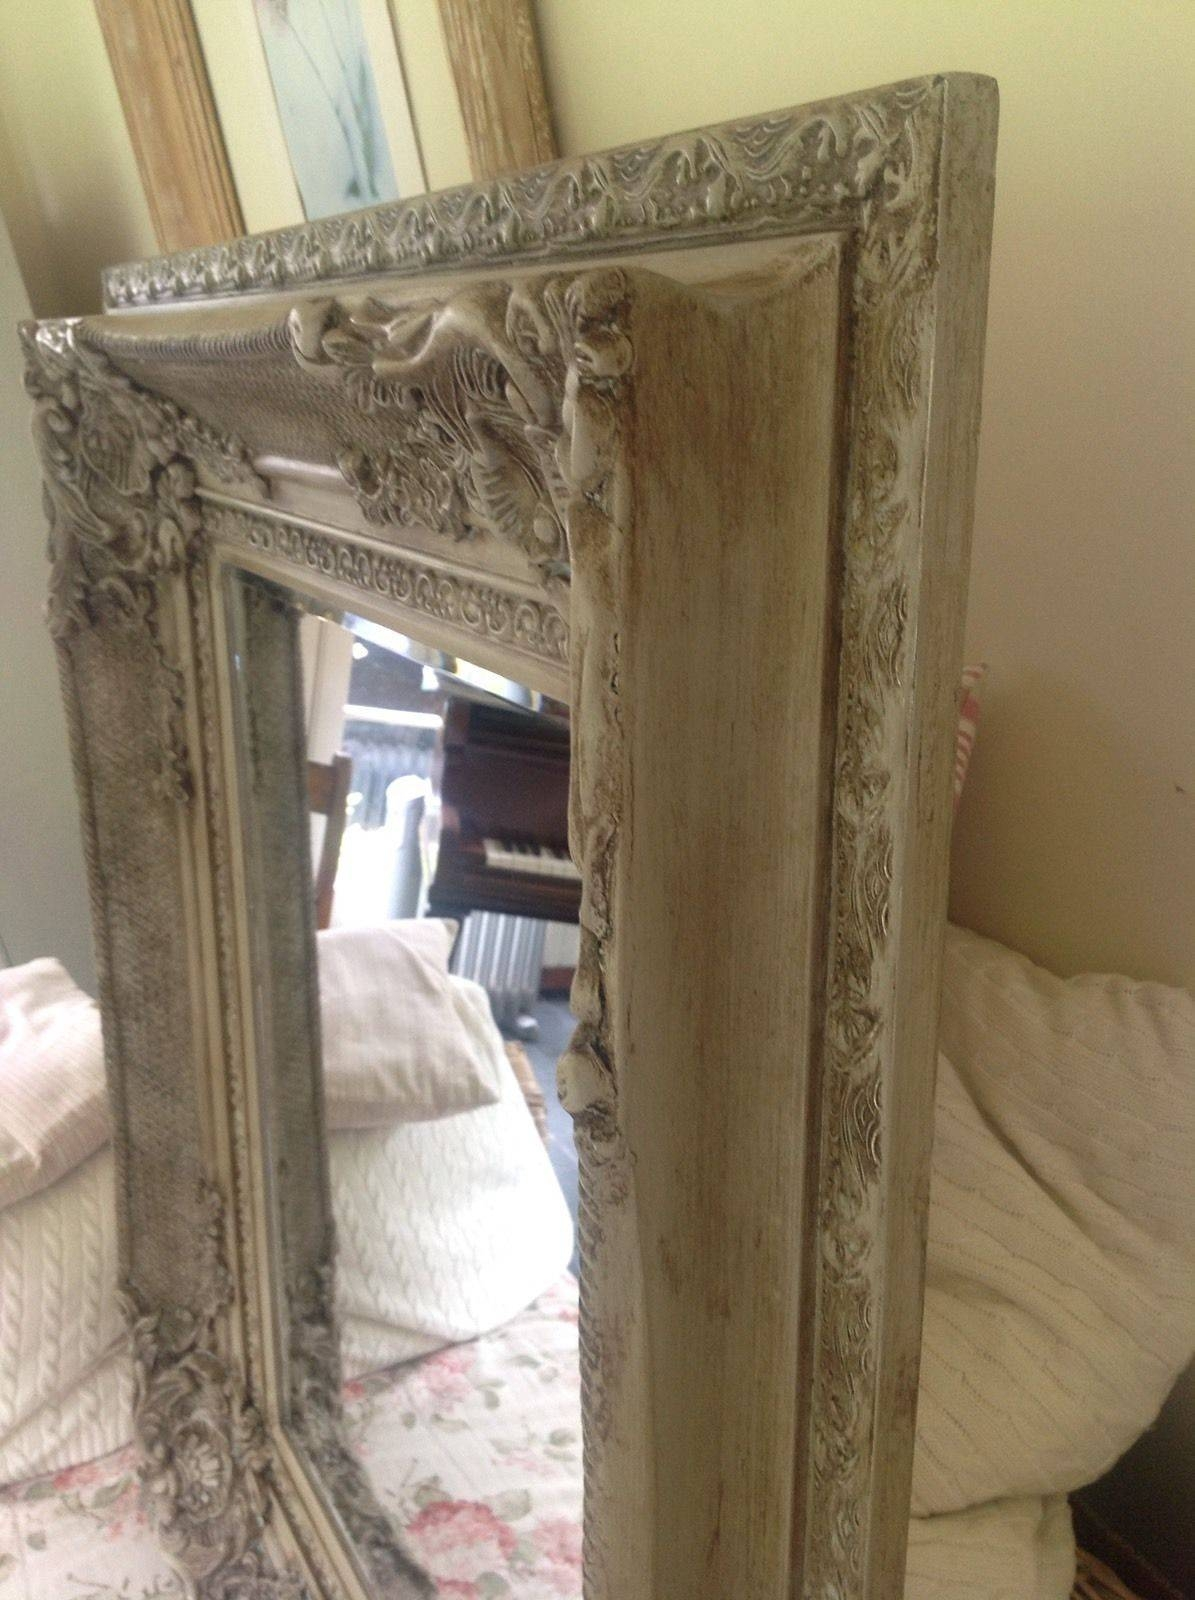 Antique French Style Bevelled Wall Mirror Carved Painted Grey intended for Large Antique Wall Mirrors (Image 3 of 25)